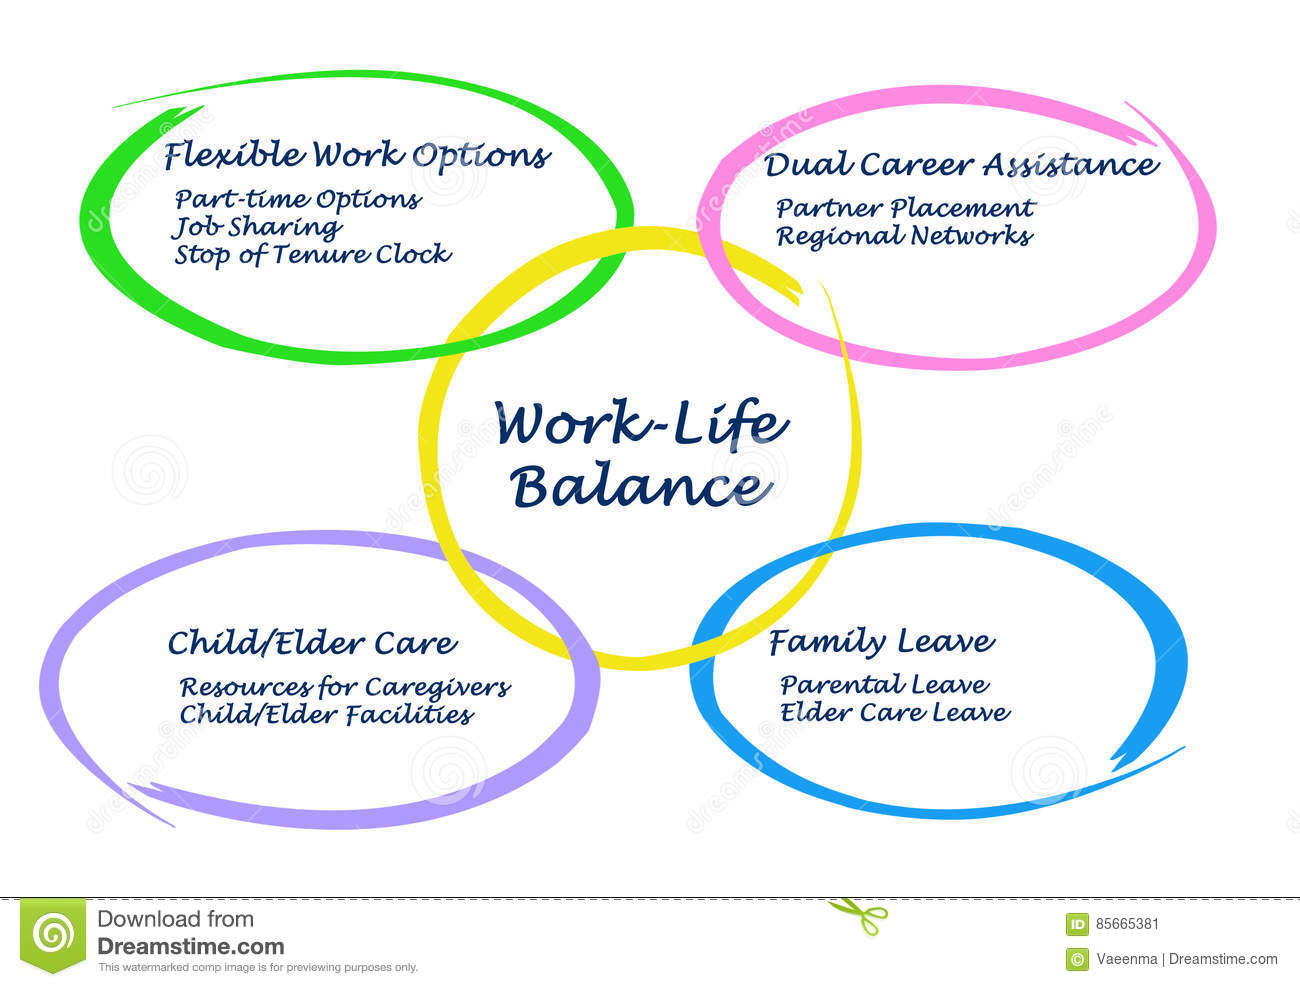 Watch How to Balance Work and Caring for Ailing Loved Ones video